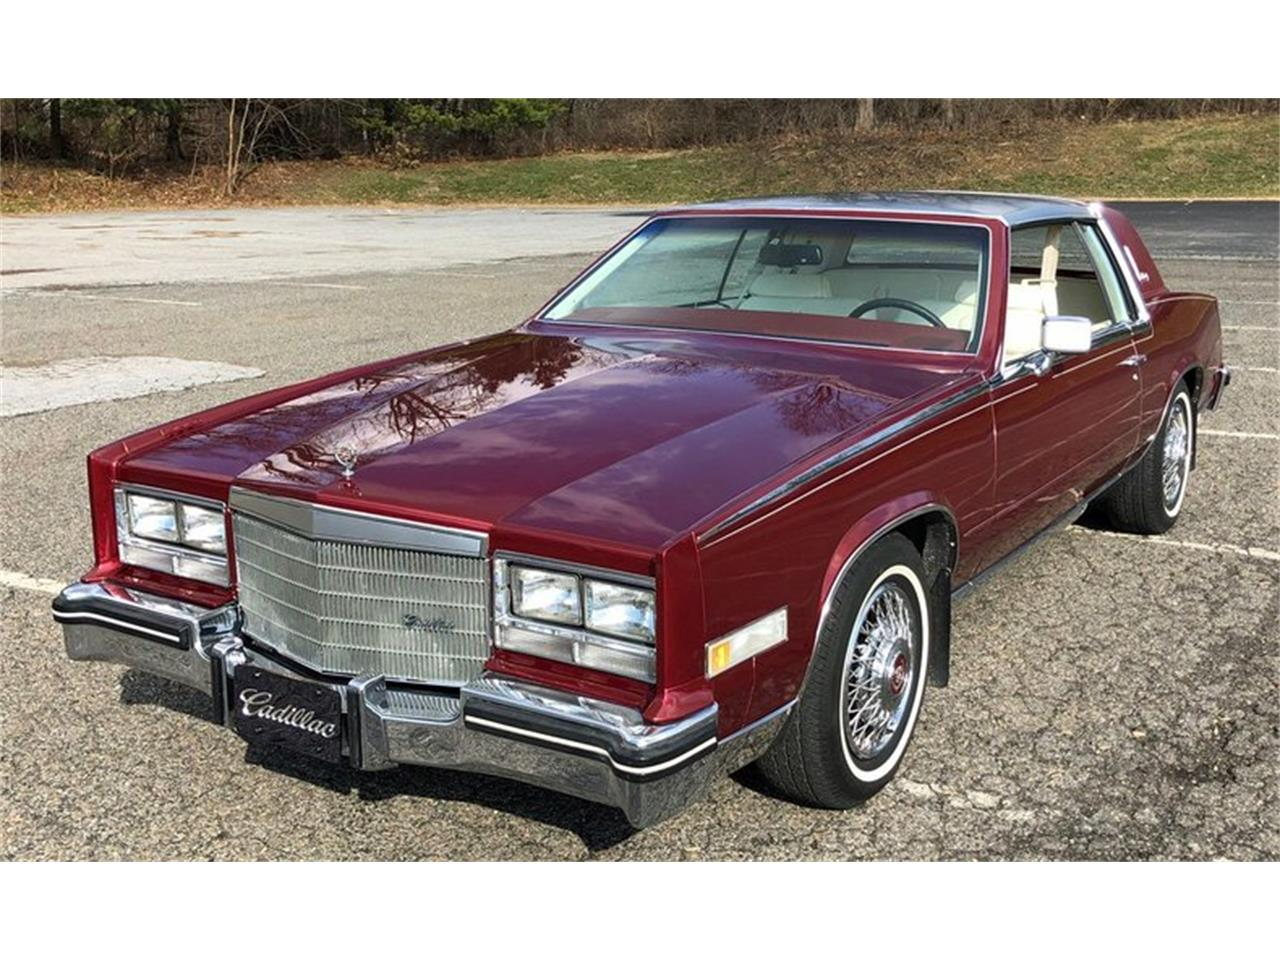 1985 Cadillac Eldorado (CC-1315509) for sale in West Chester, Pennsylvania